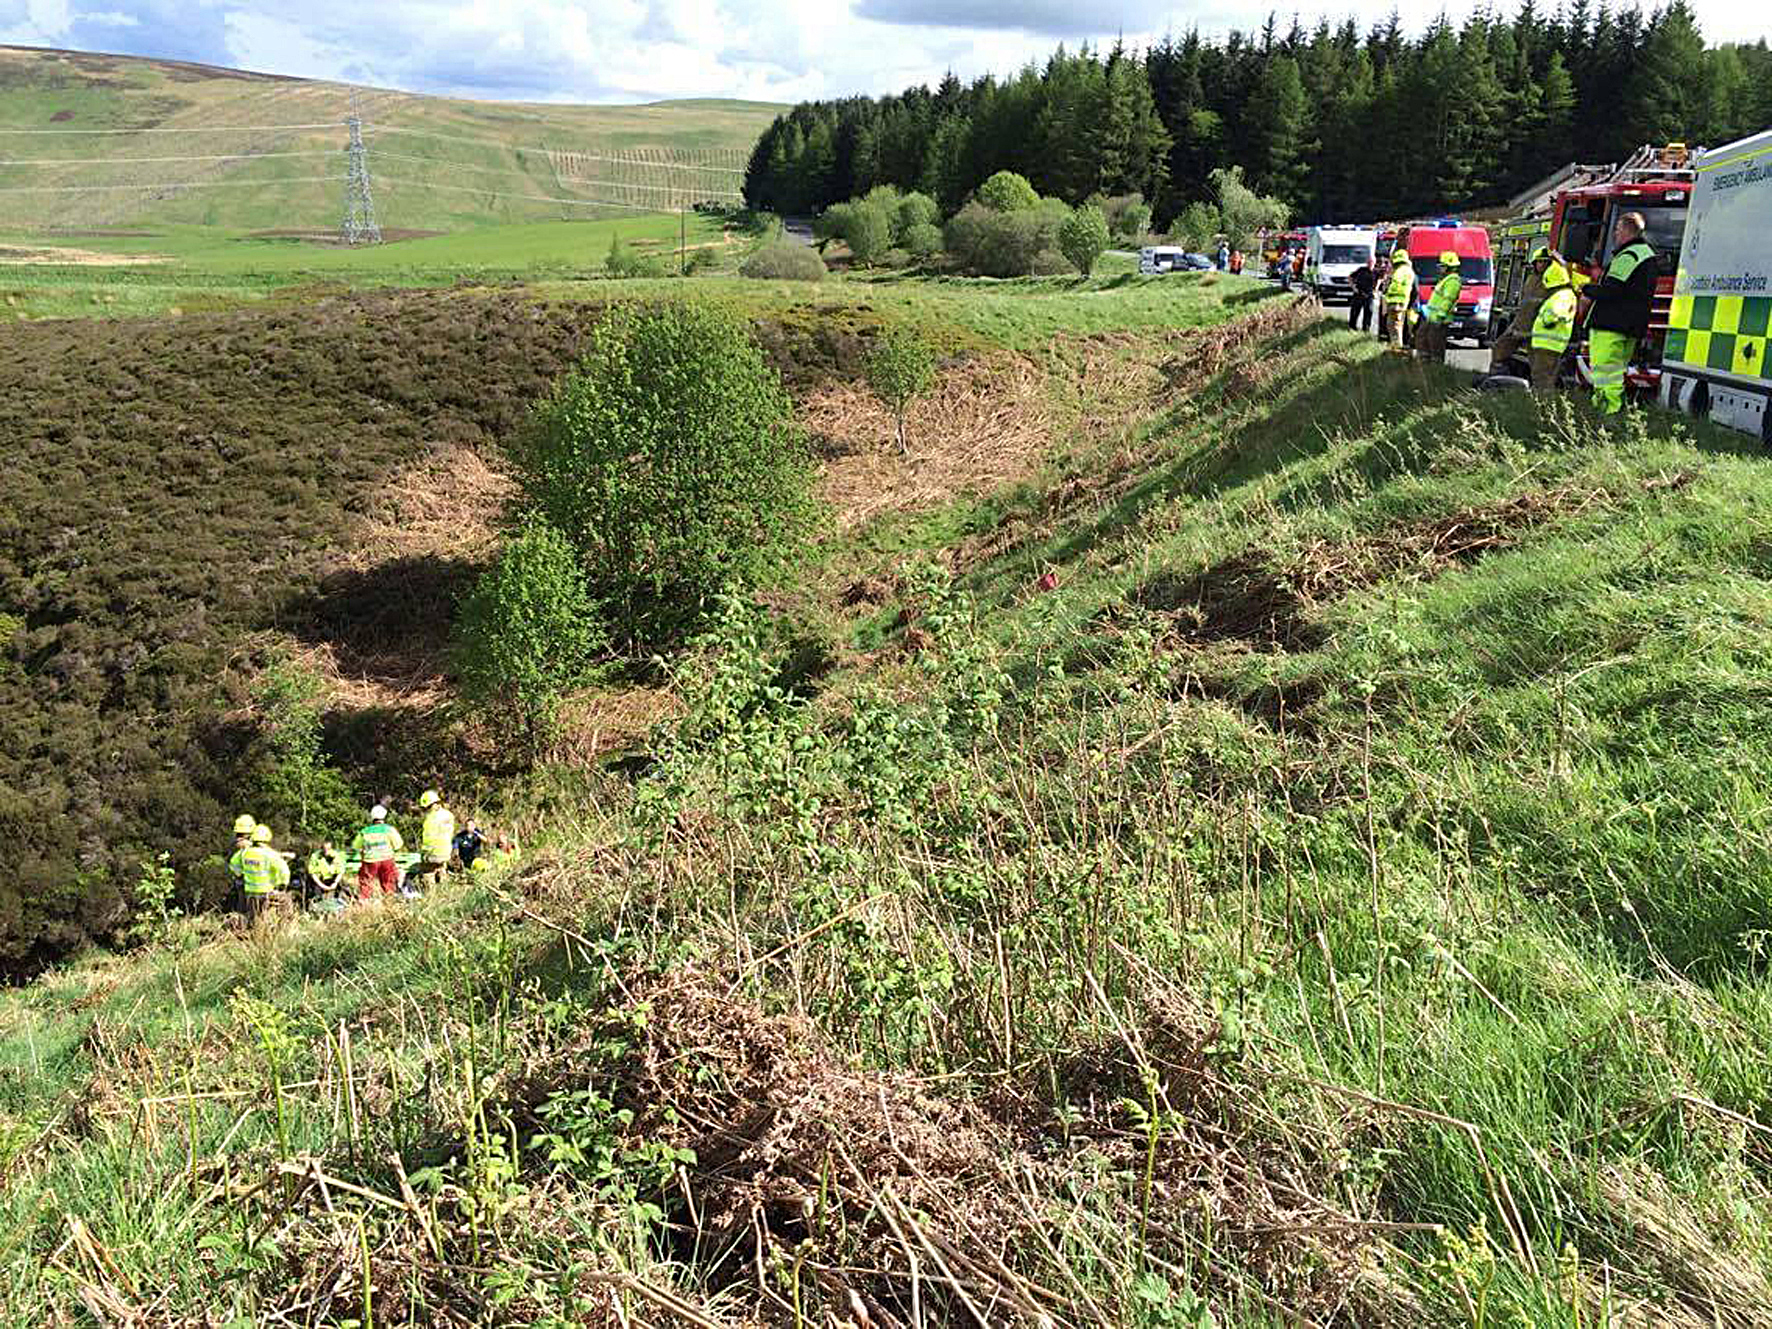 The Scottish Fire and Rescue Service winched the man to safety